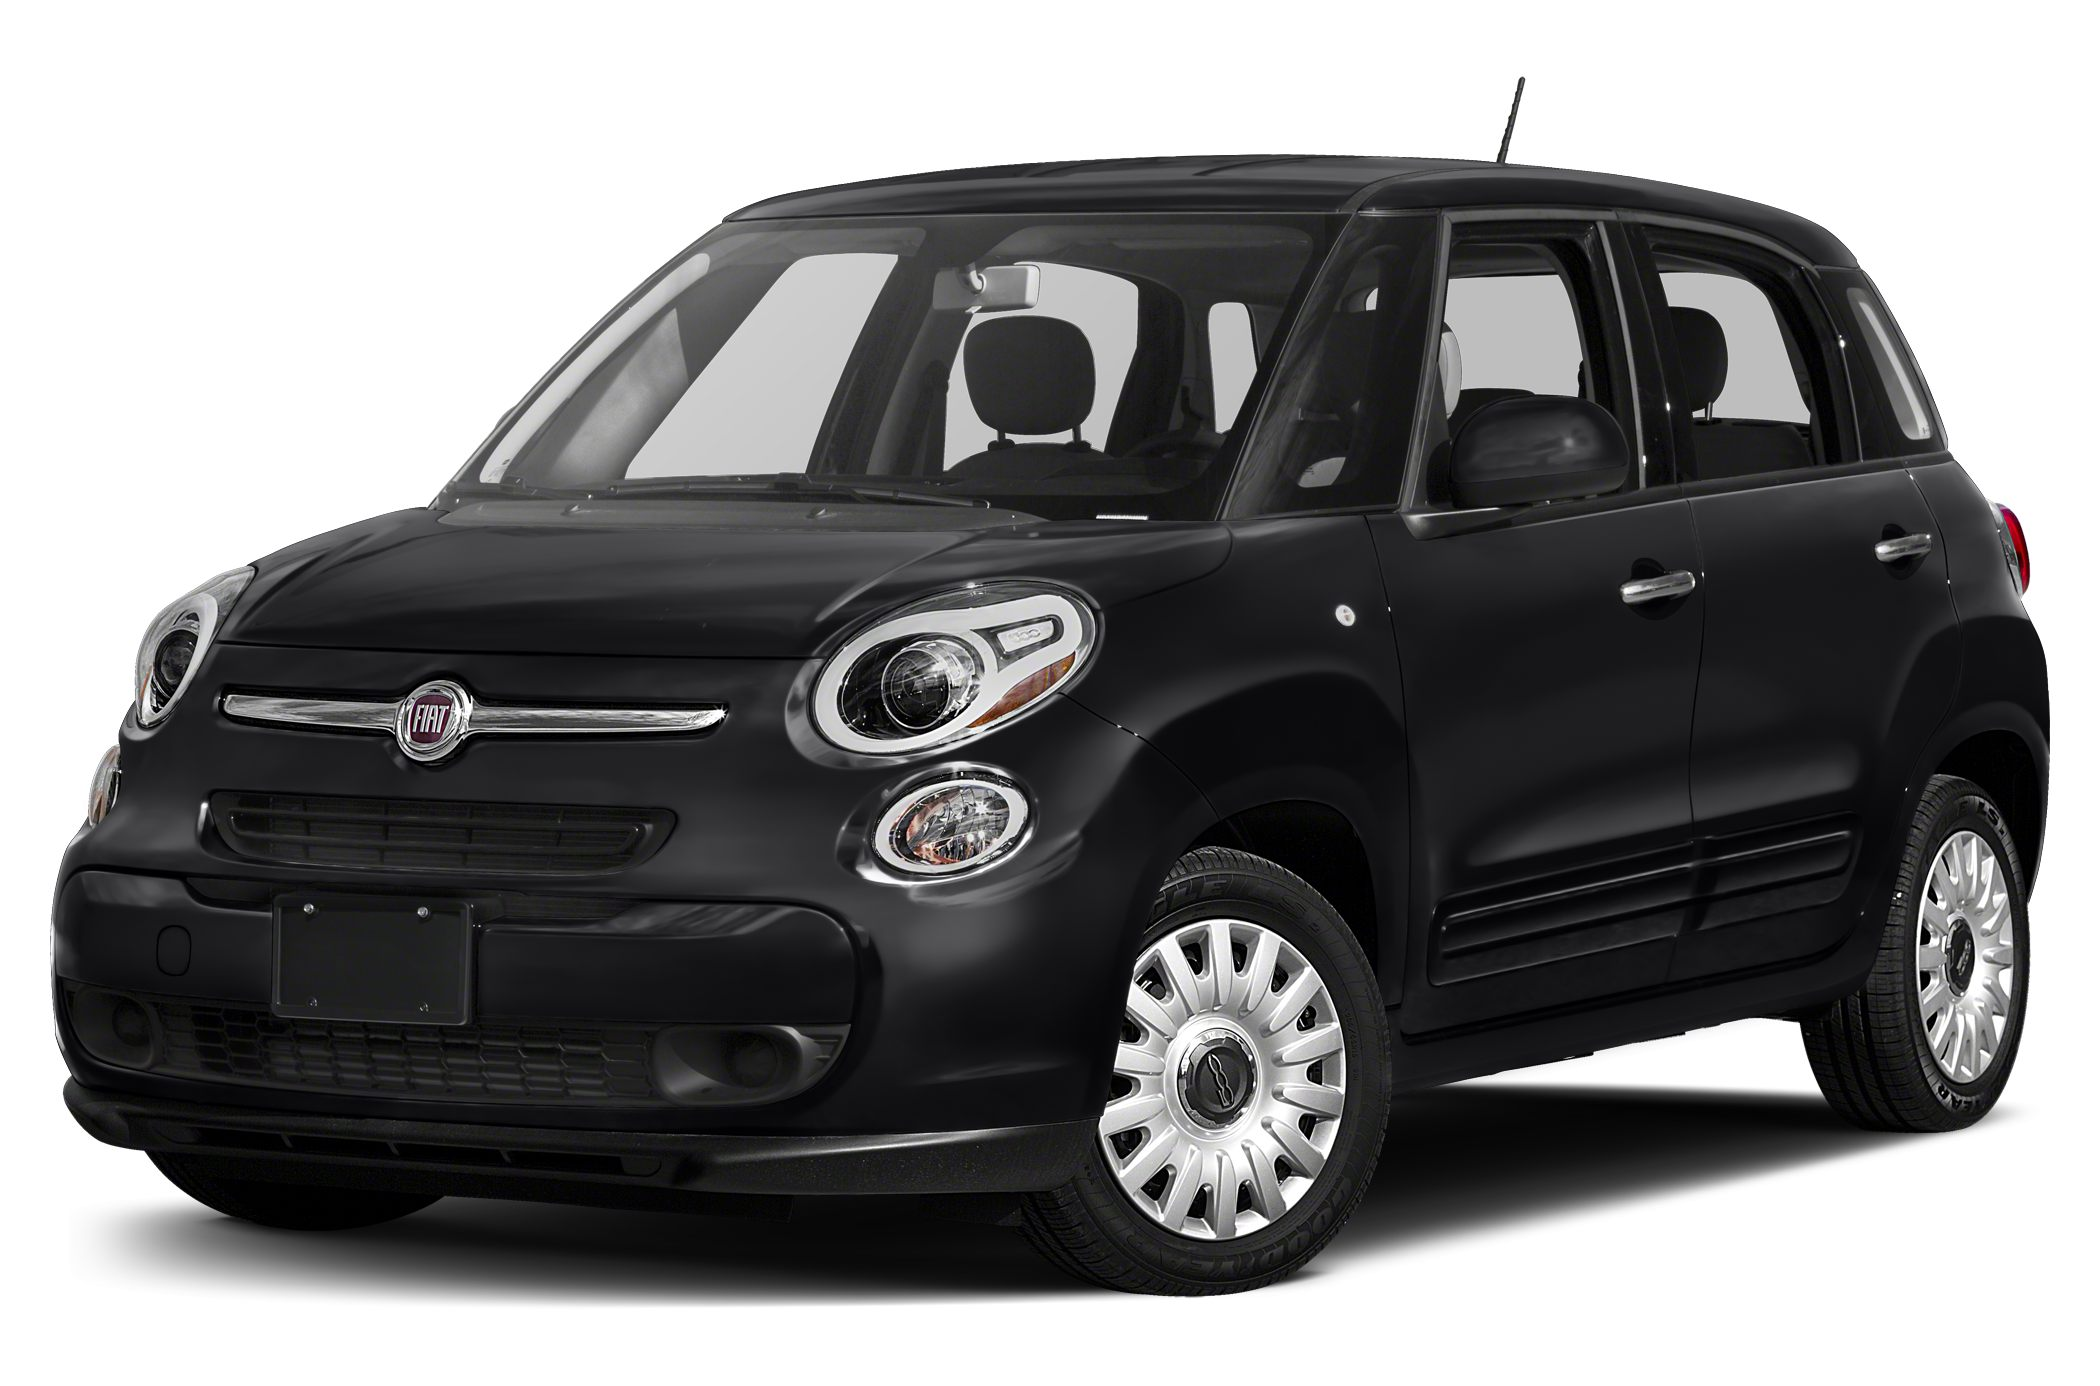 2014 fiat 500l review autoblog. Black Bedroom Furniture Sets. Home Design Ideas